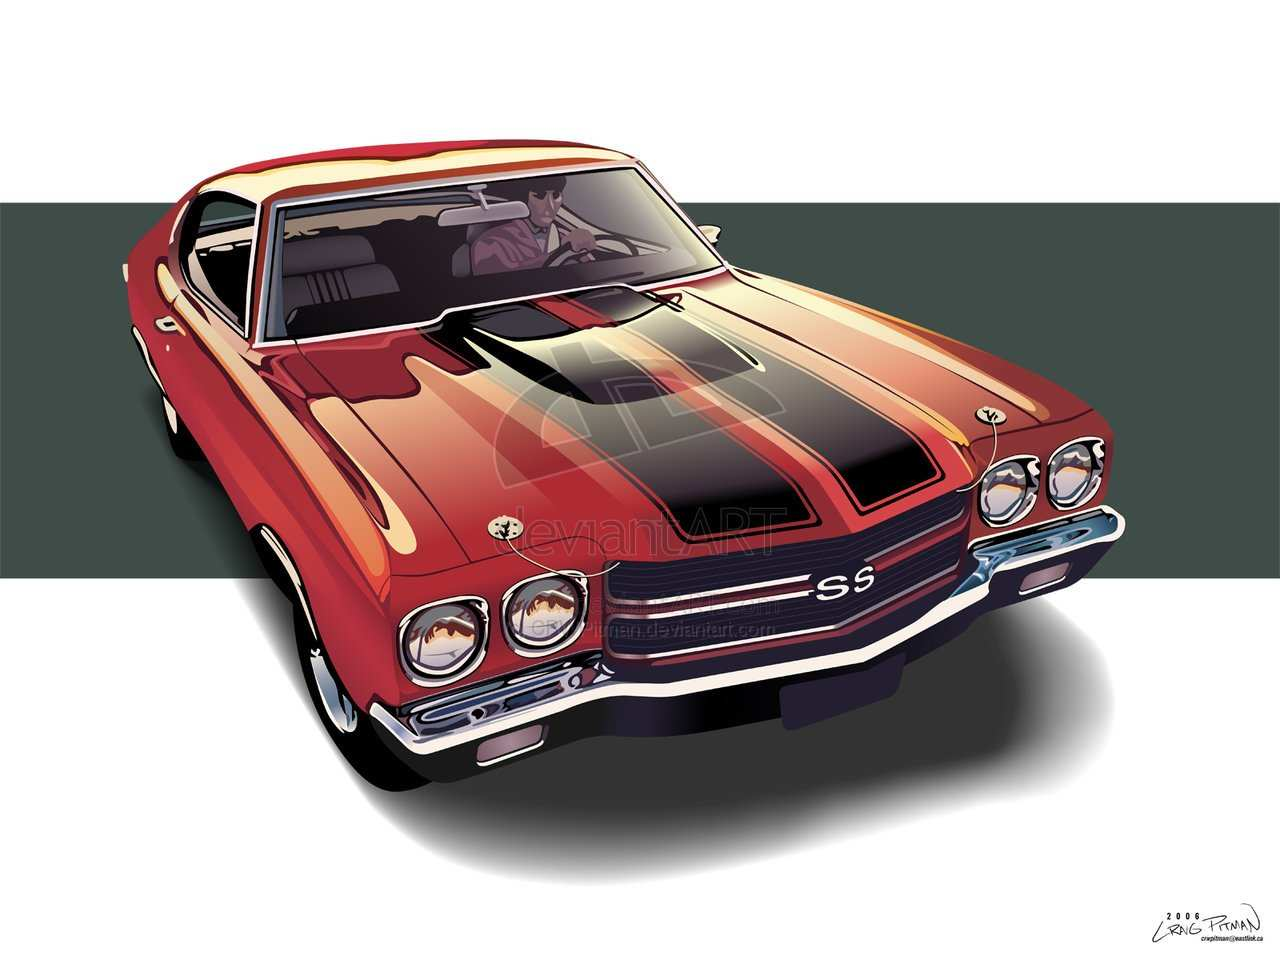 72 Great Chevelle Ss Specs Photos with Chevelle Ss Specs